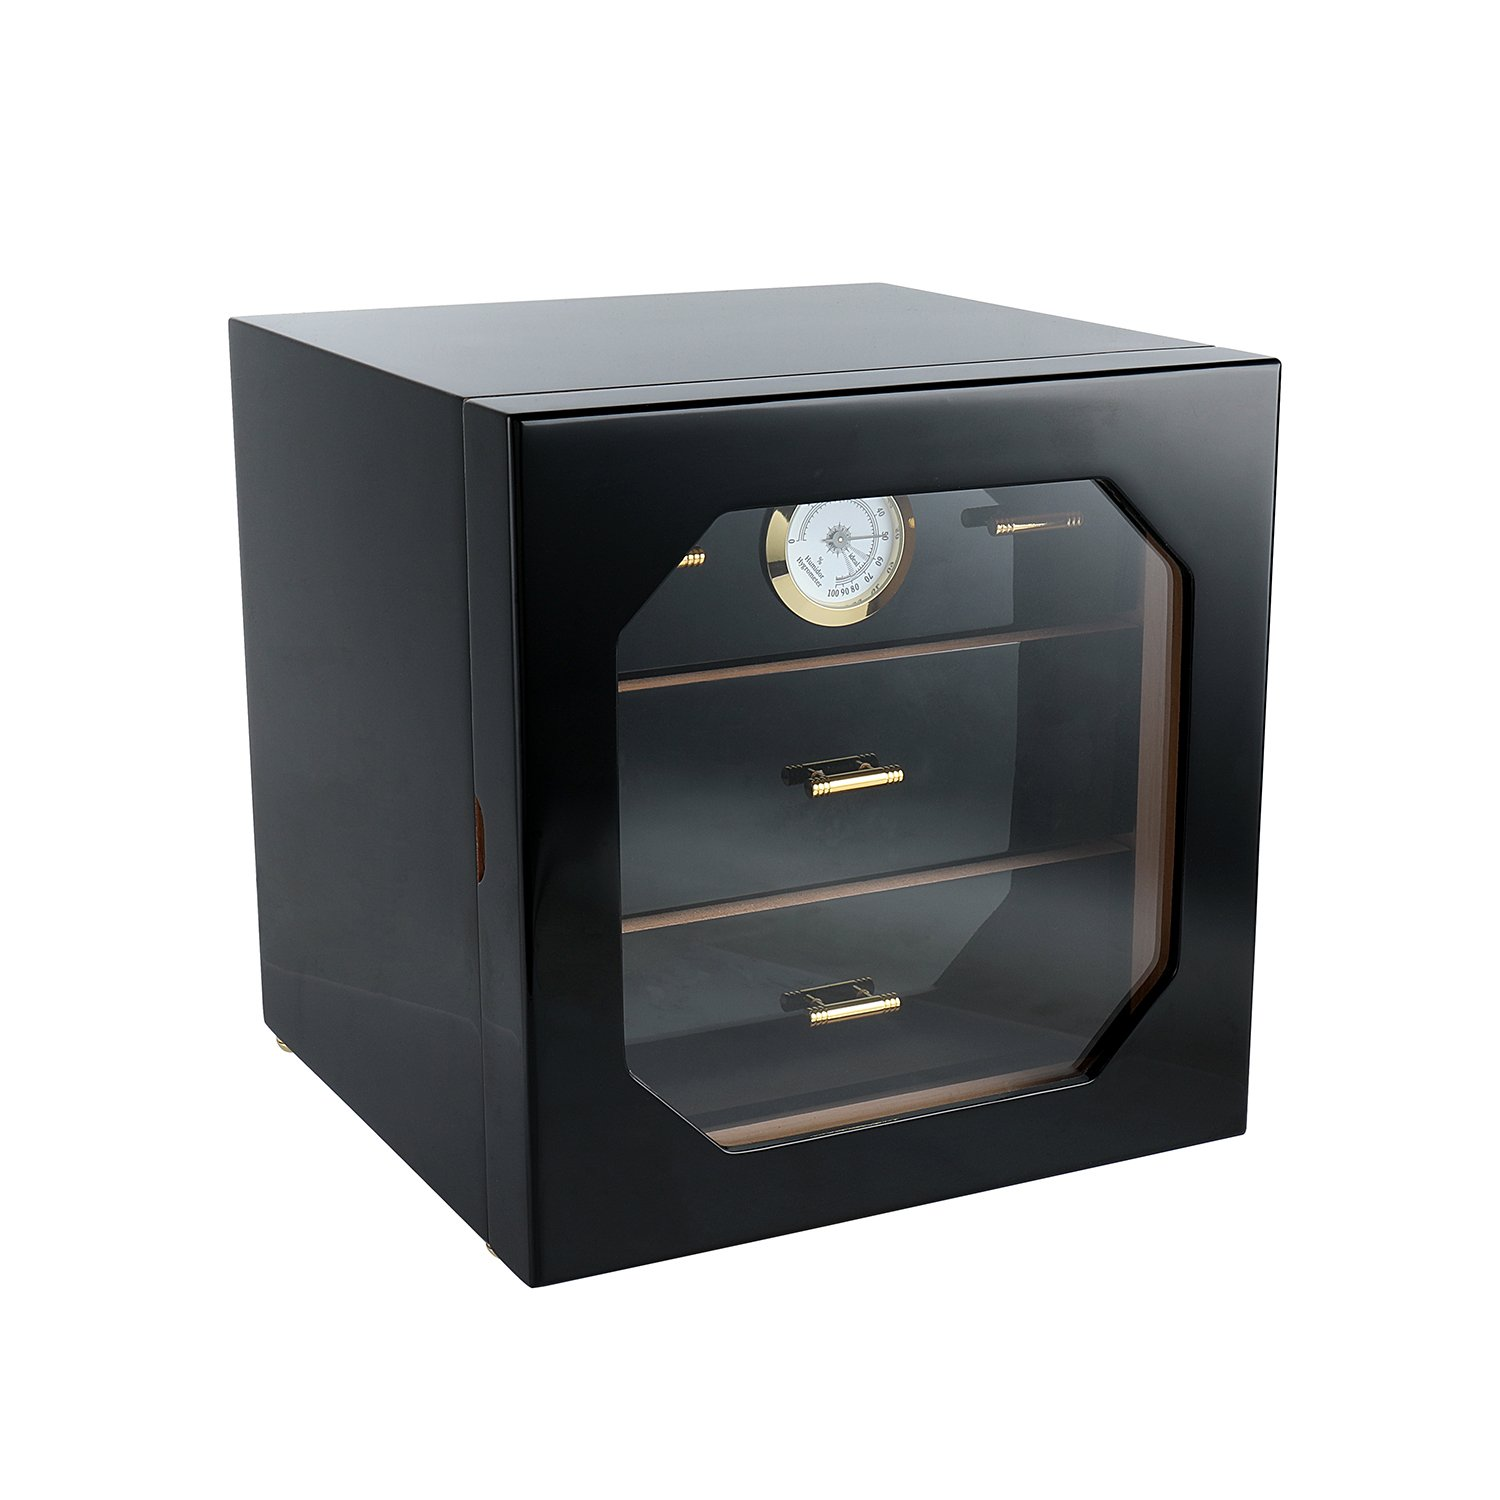 A Comely Medium Cigar Cabinet Humidor with Hygrometer and Humidifier, Spanish Cedar Wood Lined and 3 Layer Drawers, Tempered Glass Door, Decent Cigar Box Gift Set(Black Lacquer)